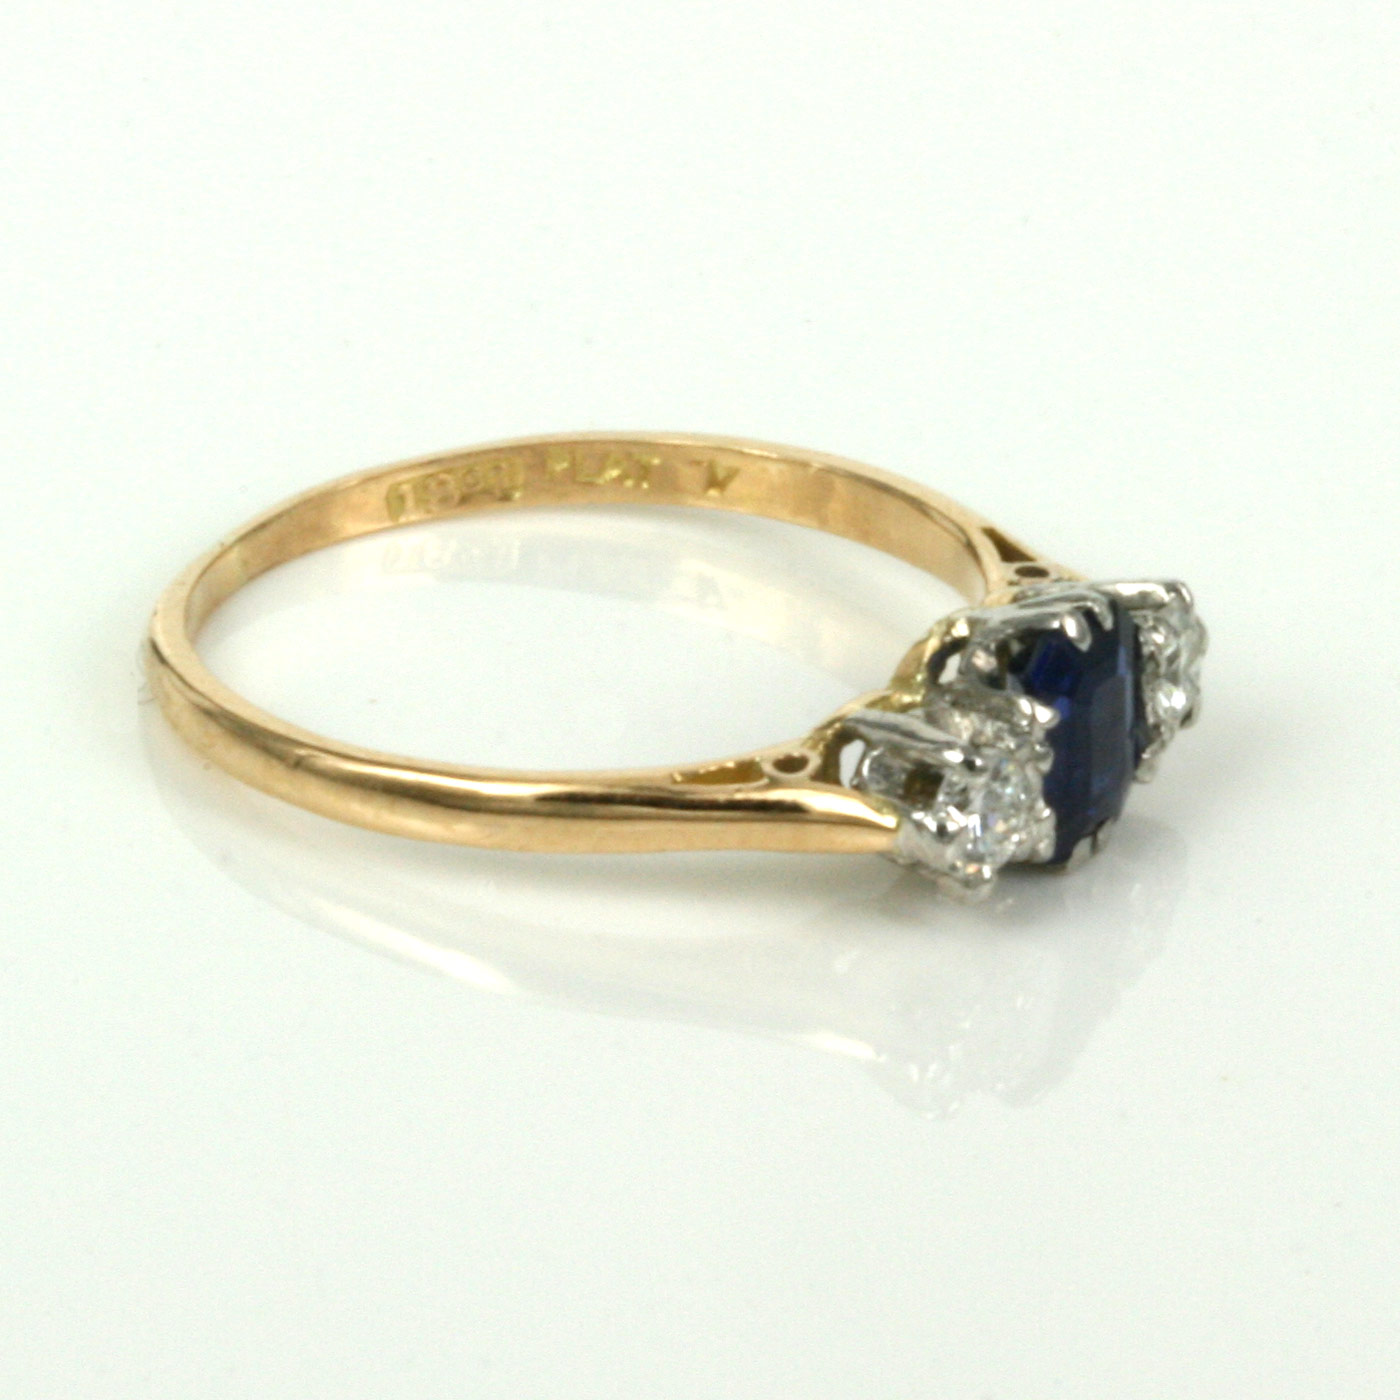 1930's Sapphire And Diamond Engagement Ring